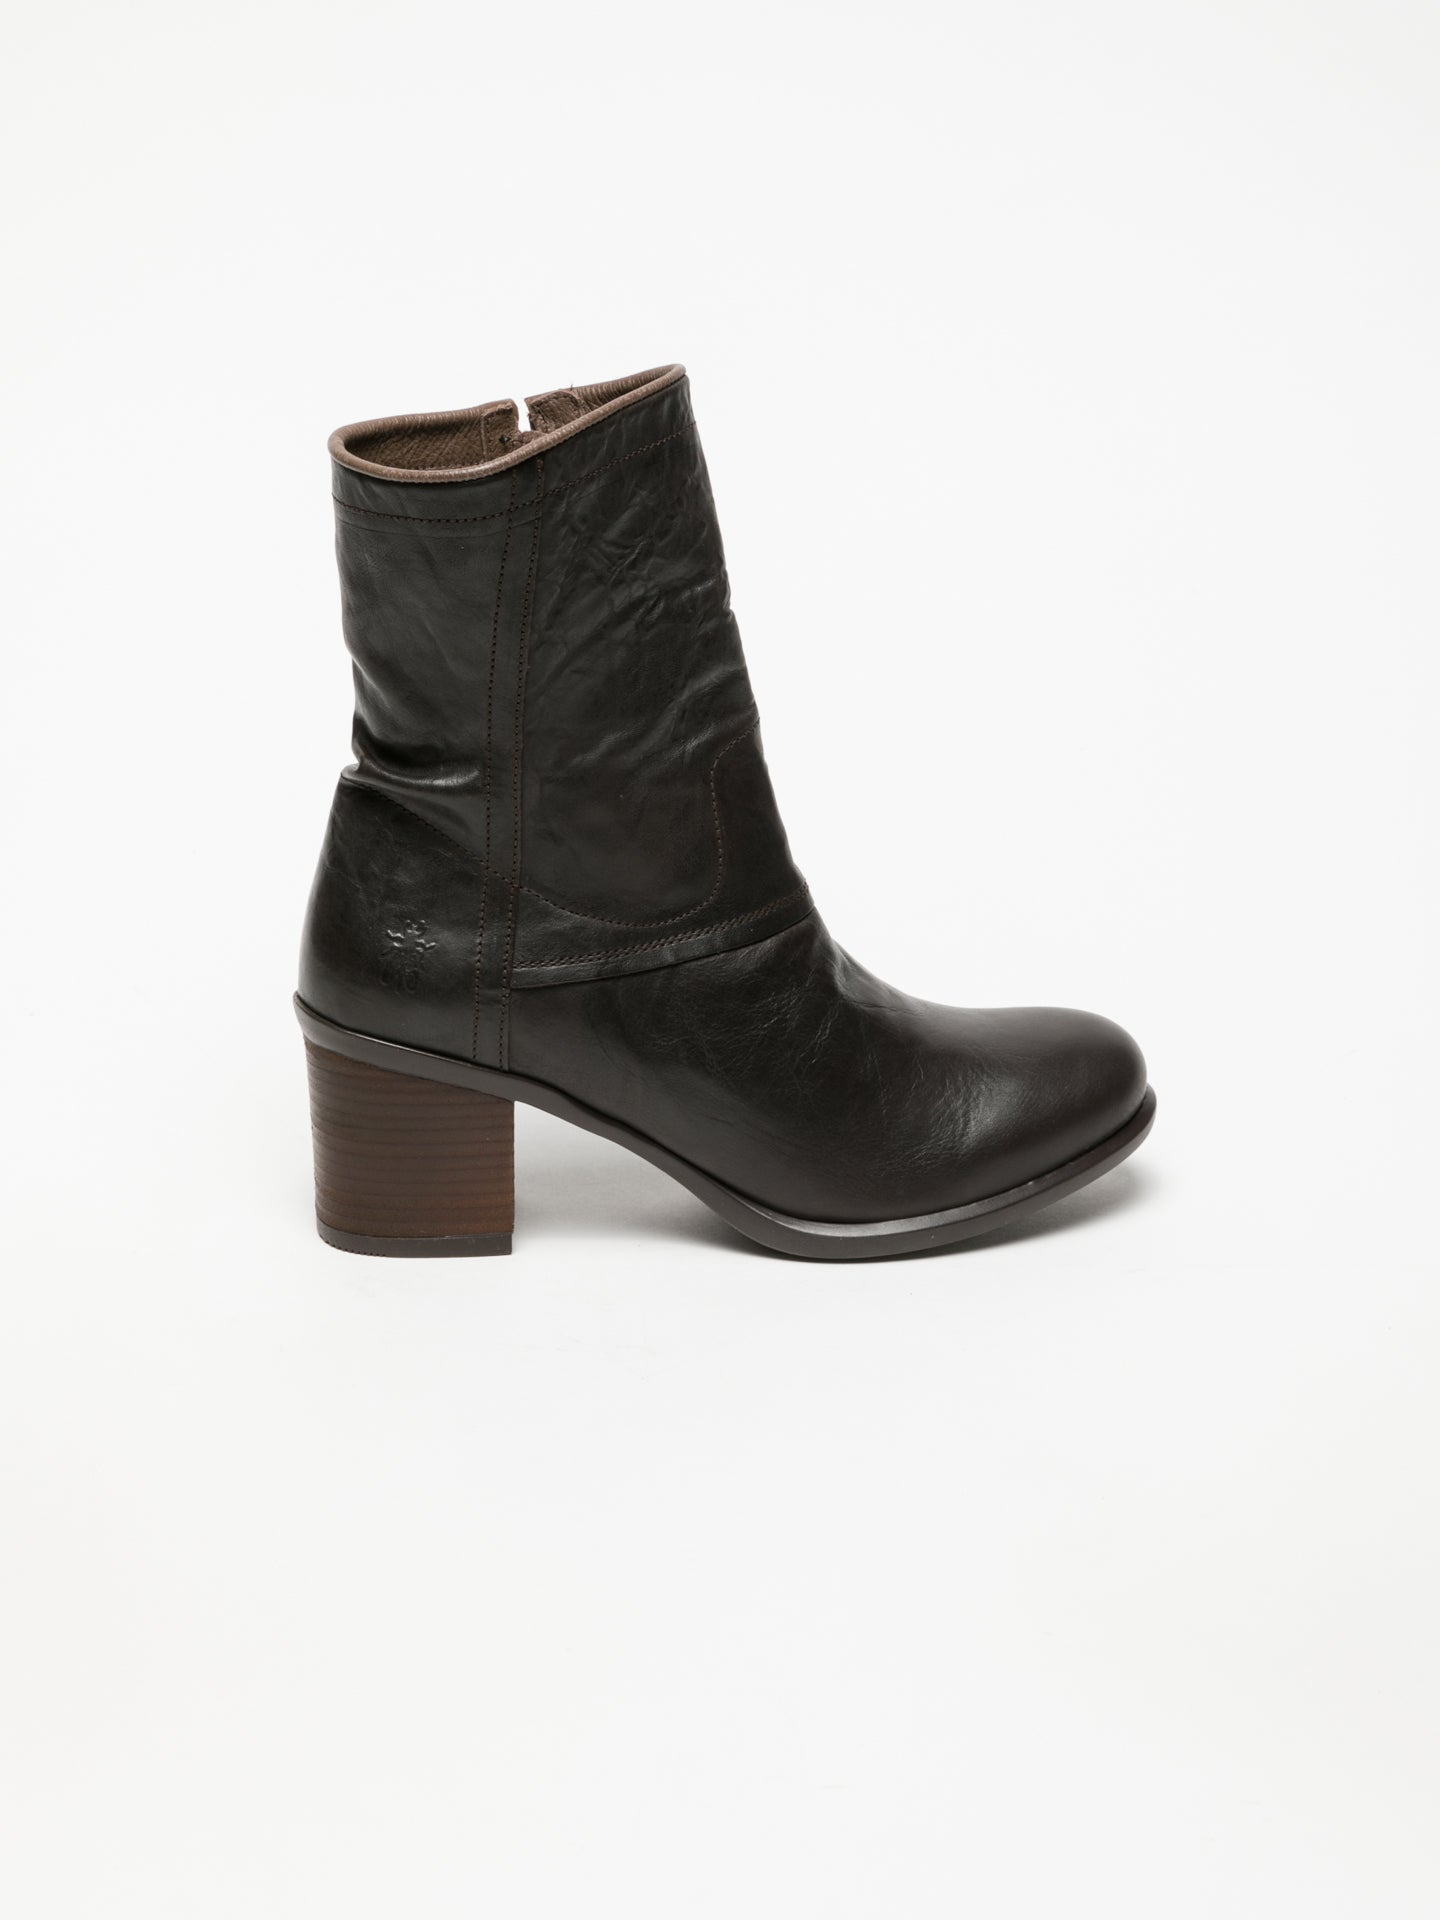 Fly London Sienna Zip Up Ankle Boots